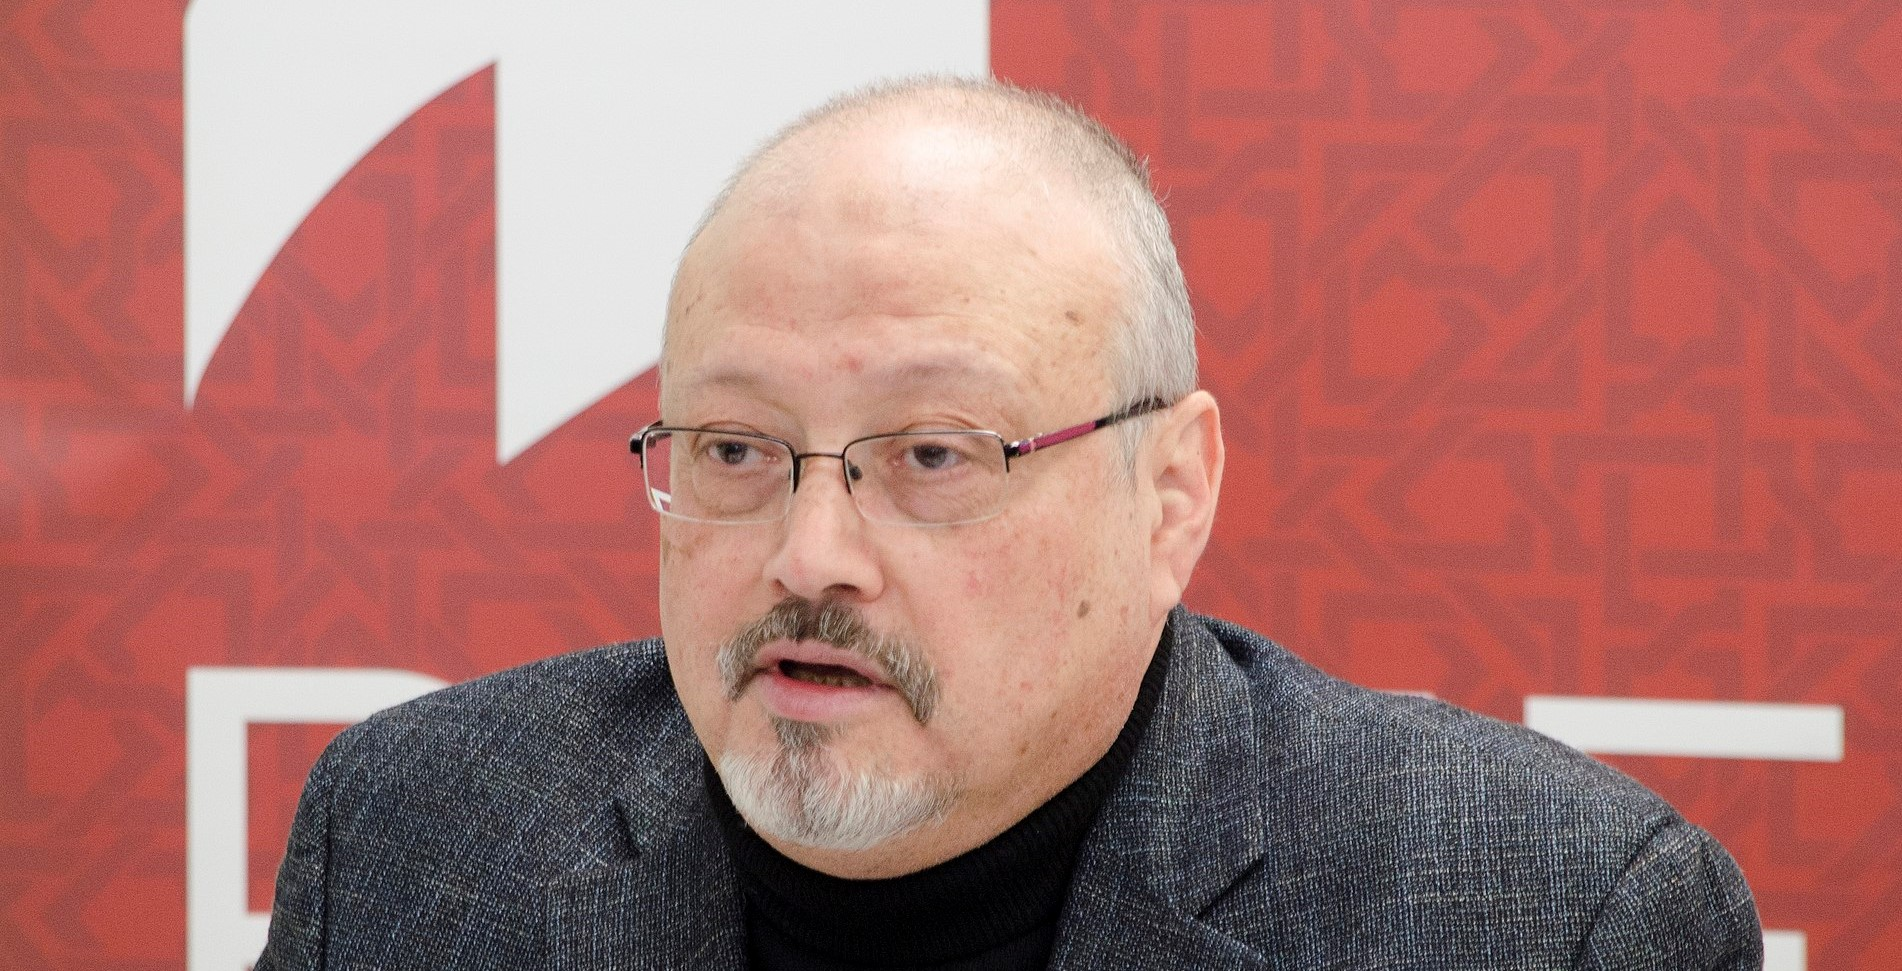 US Treasury announces sanctions against Saudi Arabia for Khashoggi killing